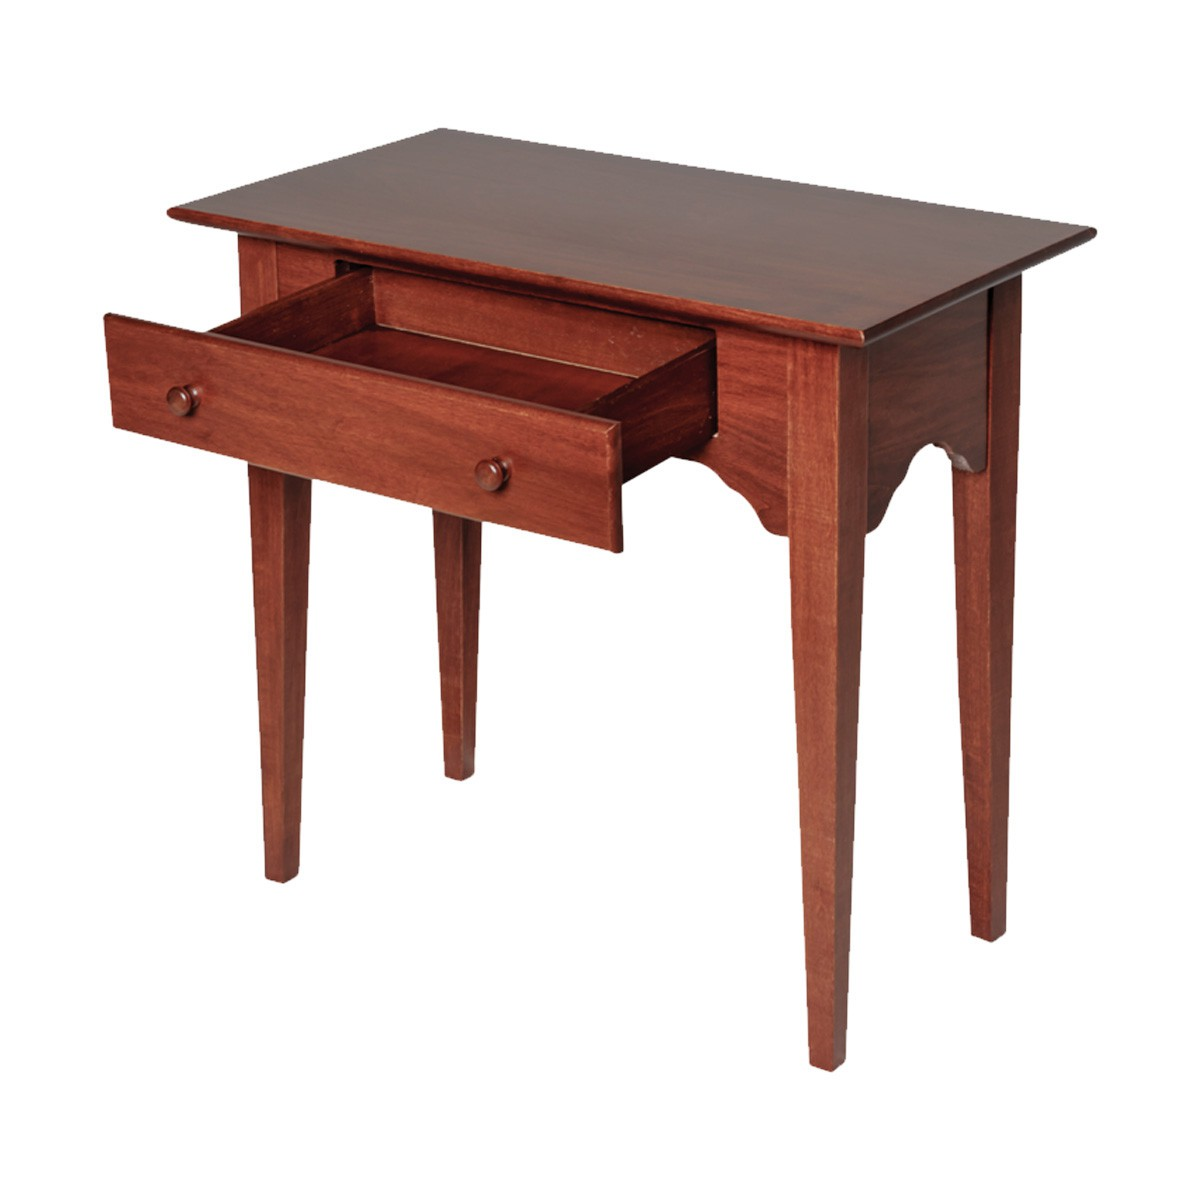 end tables bedroom cherry stain enfield pine living room preend discontinued broyhill dining furniture pulaski sectional coffee small table royal house full wooden sofa design